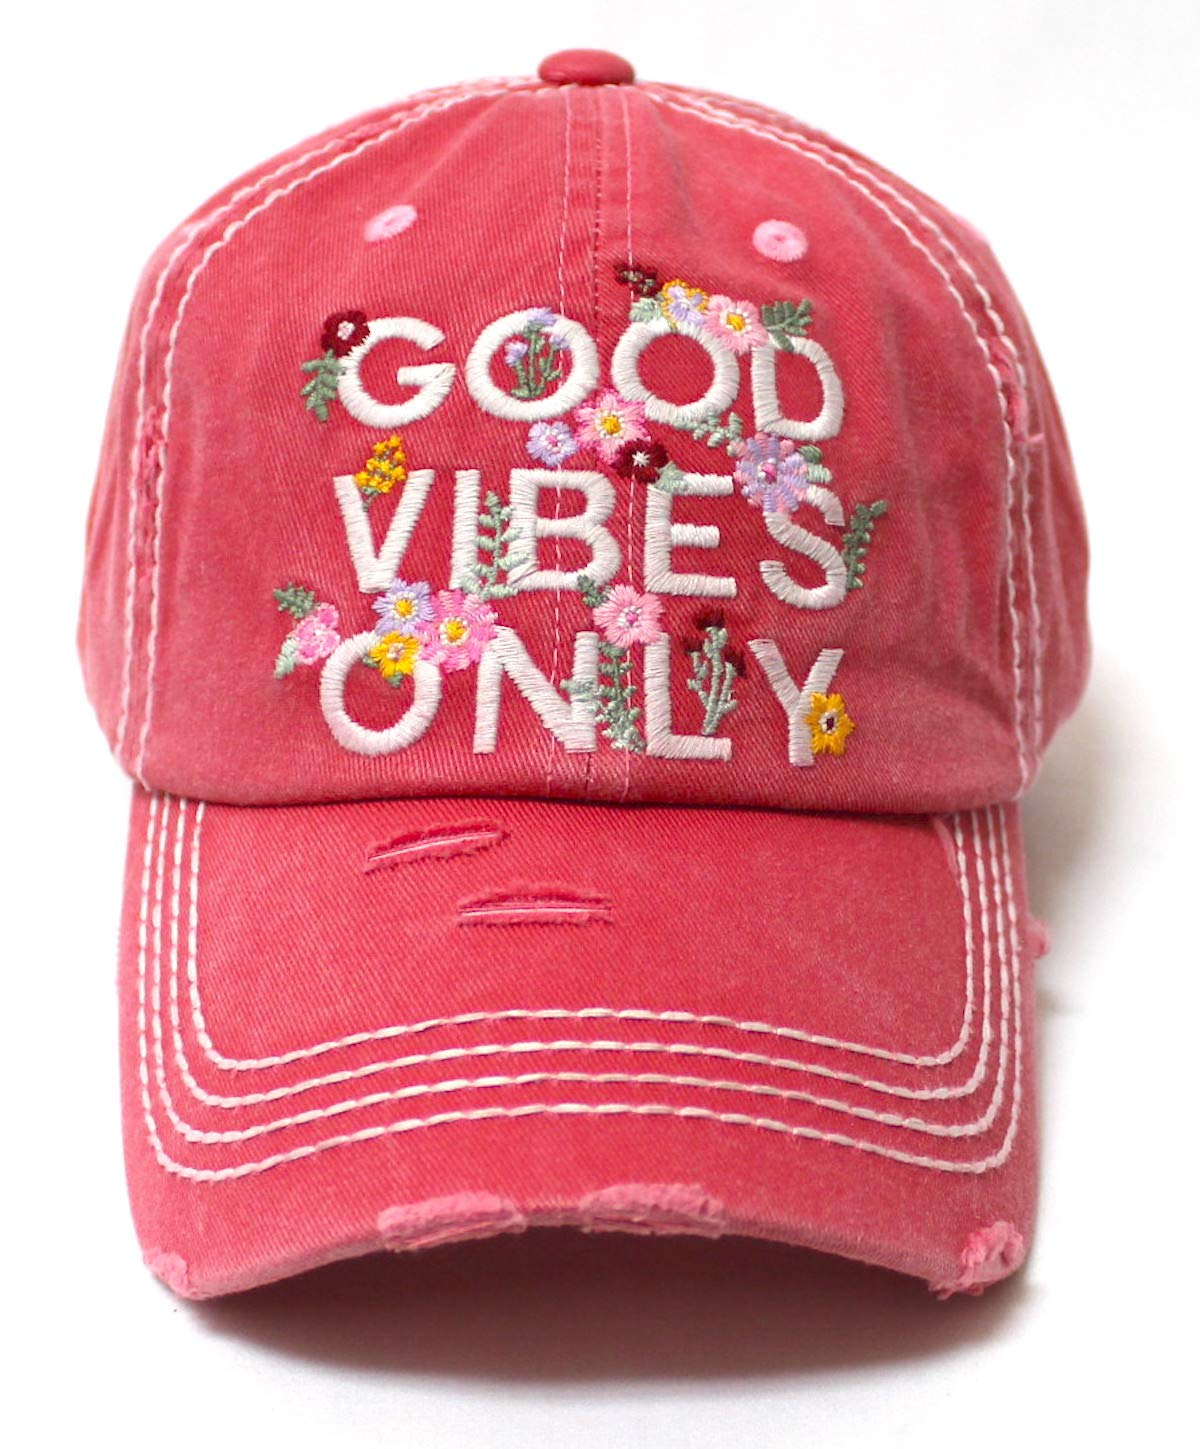 Women's Summer Ballcap Good Vibes Only Floral Monogram Embroidery Beach Hat, Rose Pink - Caps 'N Vintage